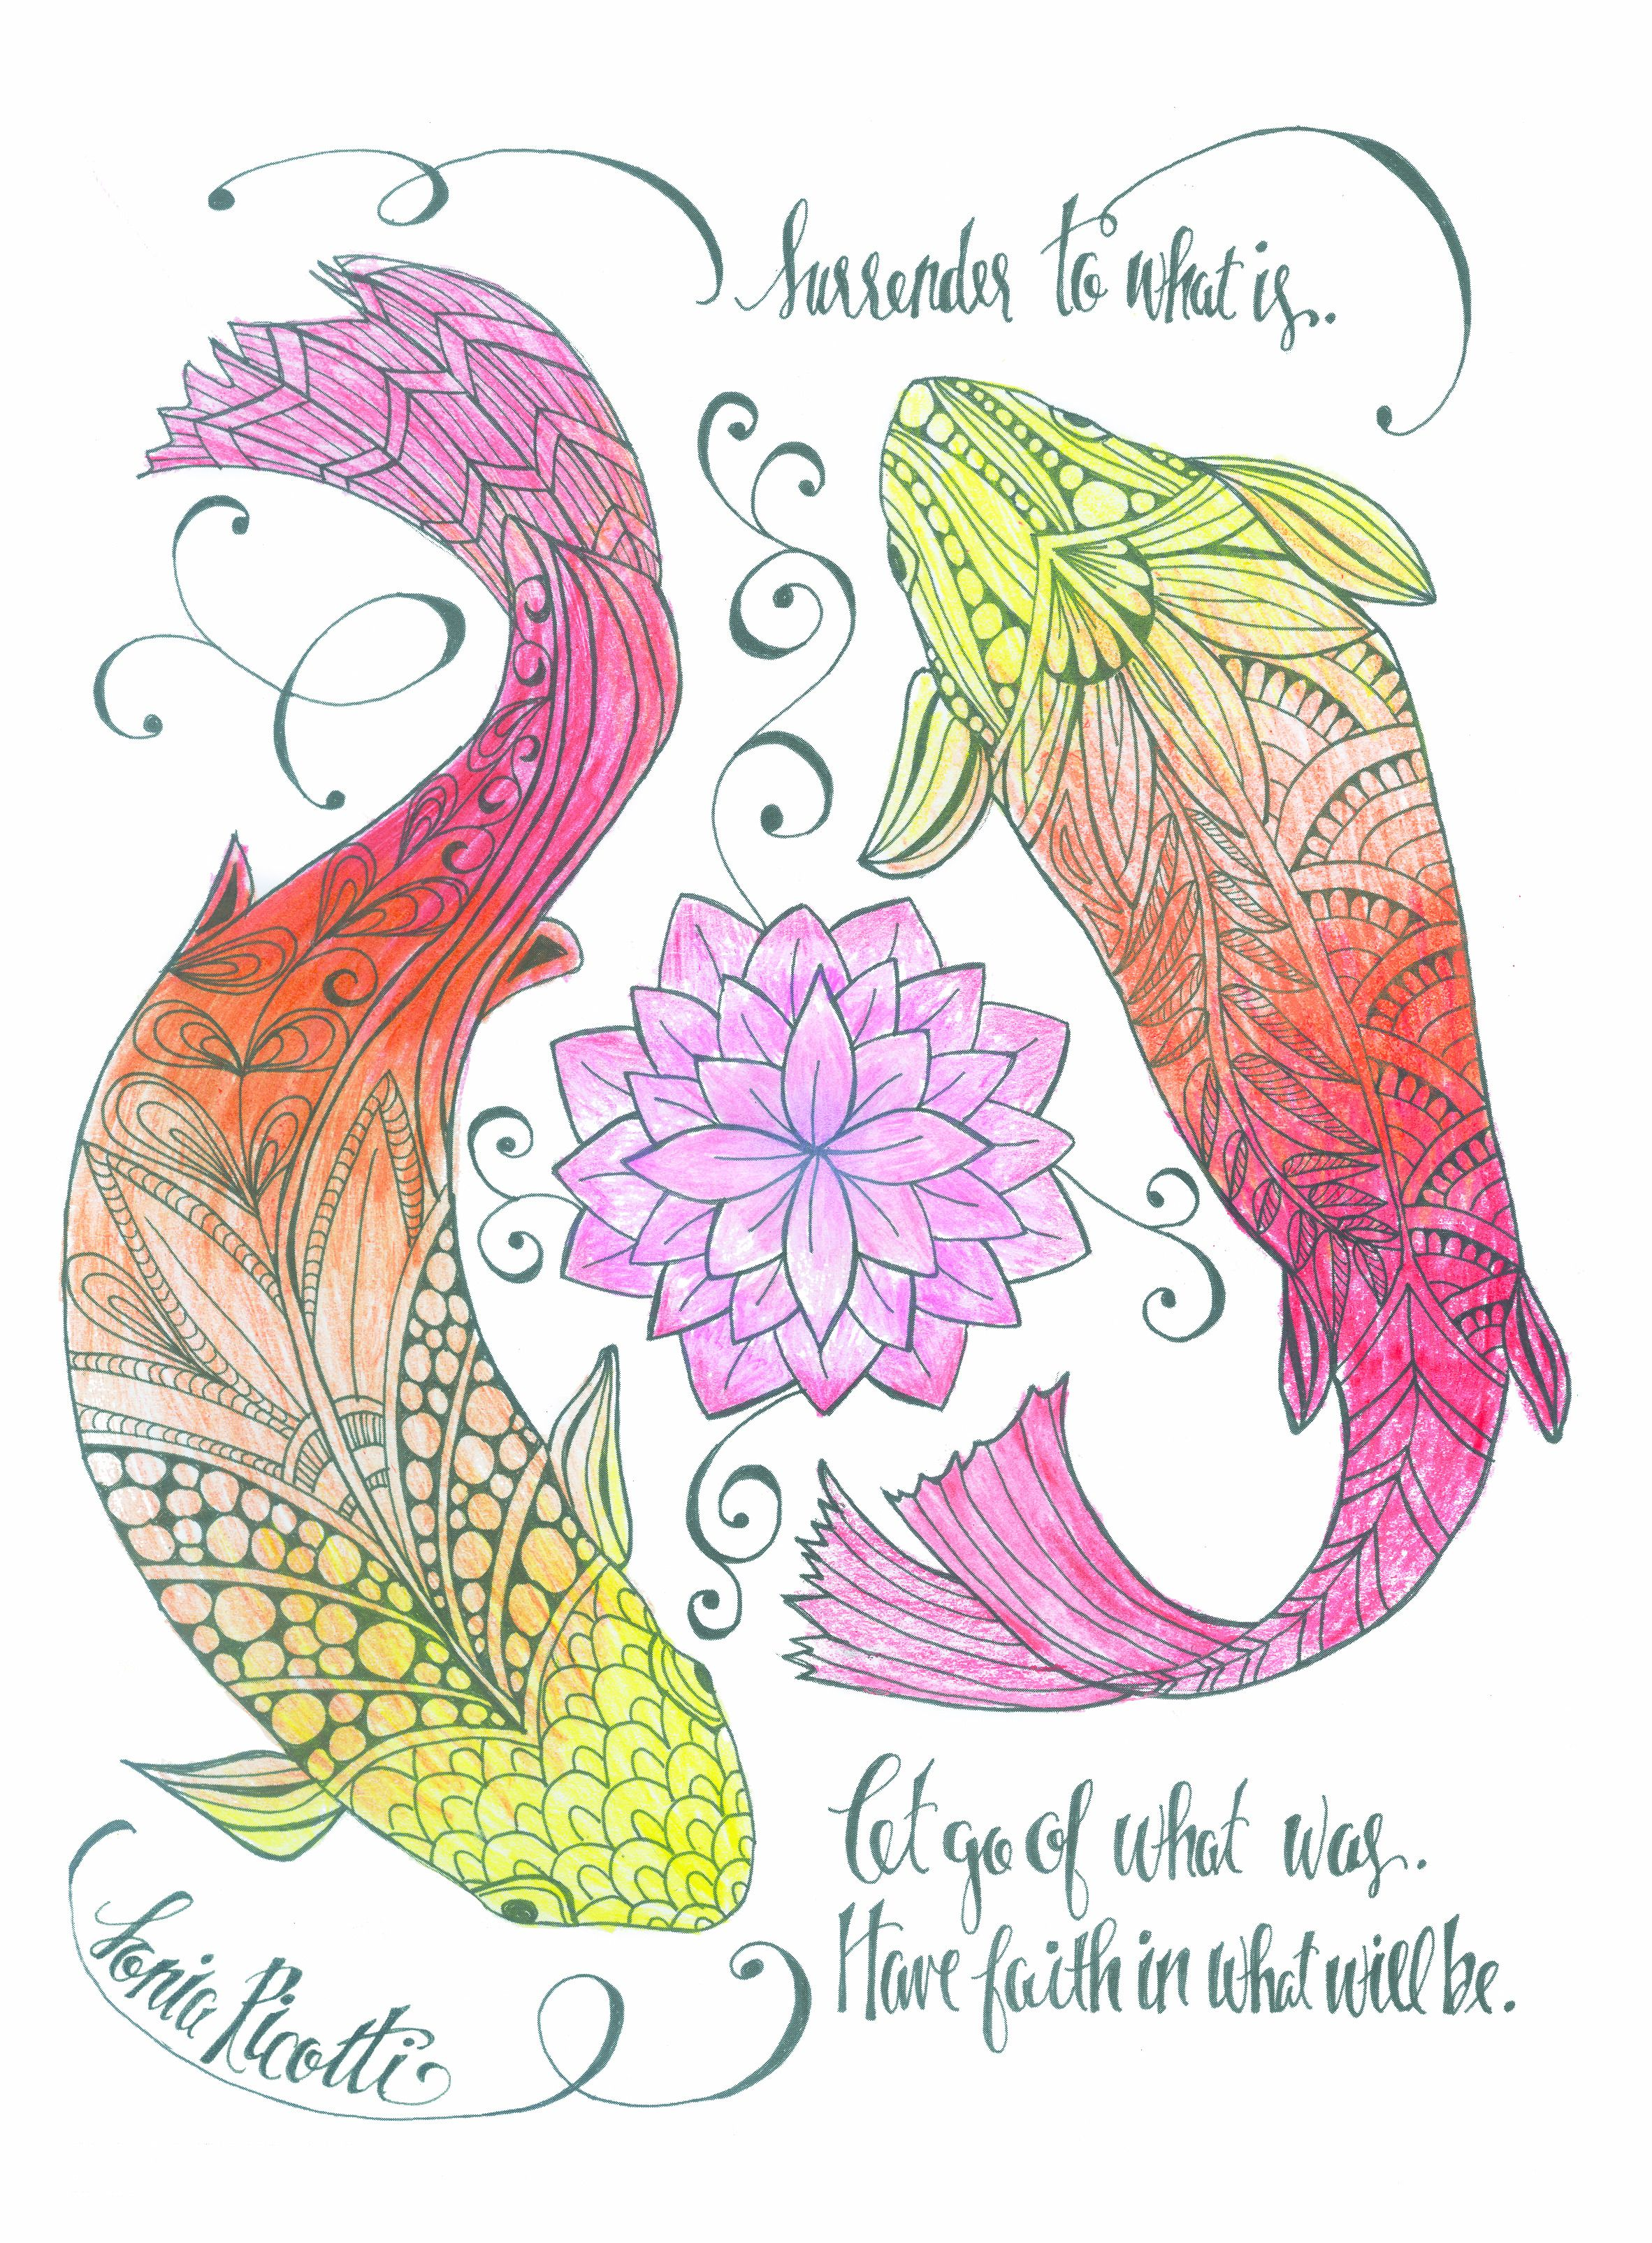 Another Beauty From The Inkspirations For Recovery Coloring Book